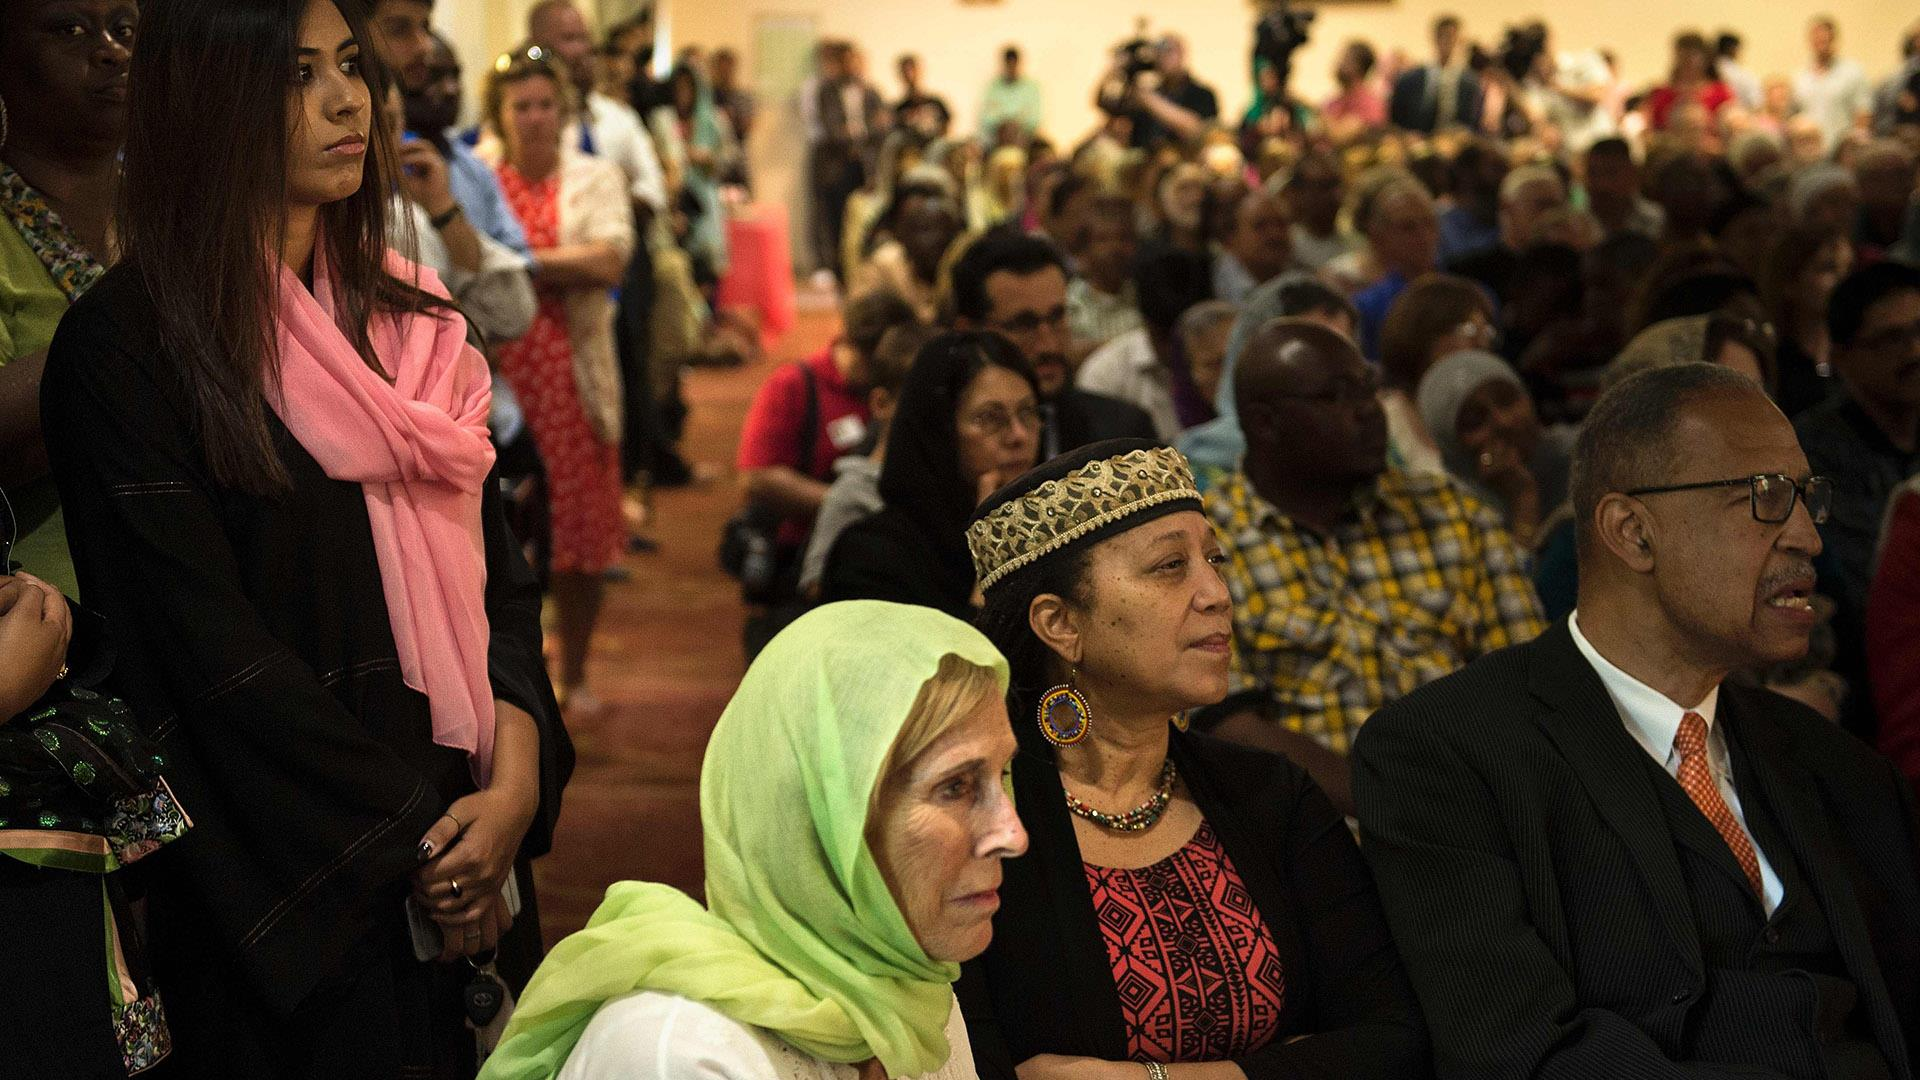 Packed Mosque Welcomes Muhammad Ali Home to Louisville, Kentucky